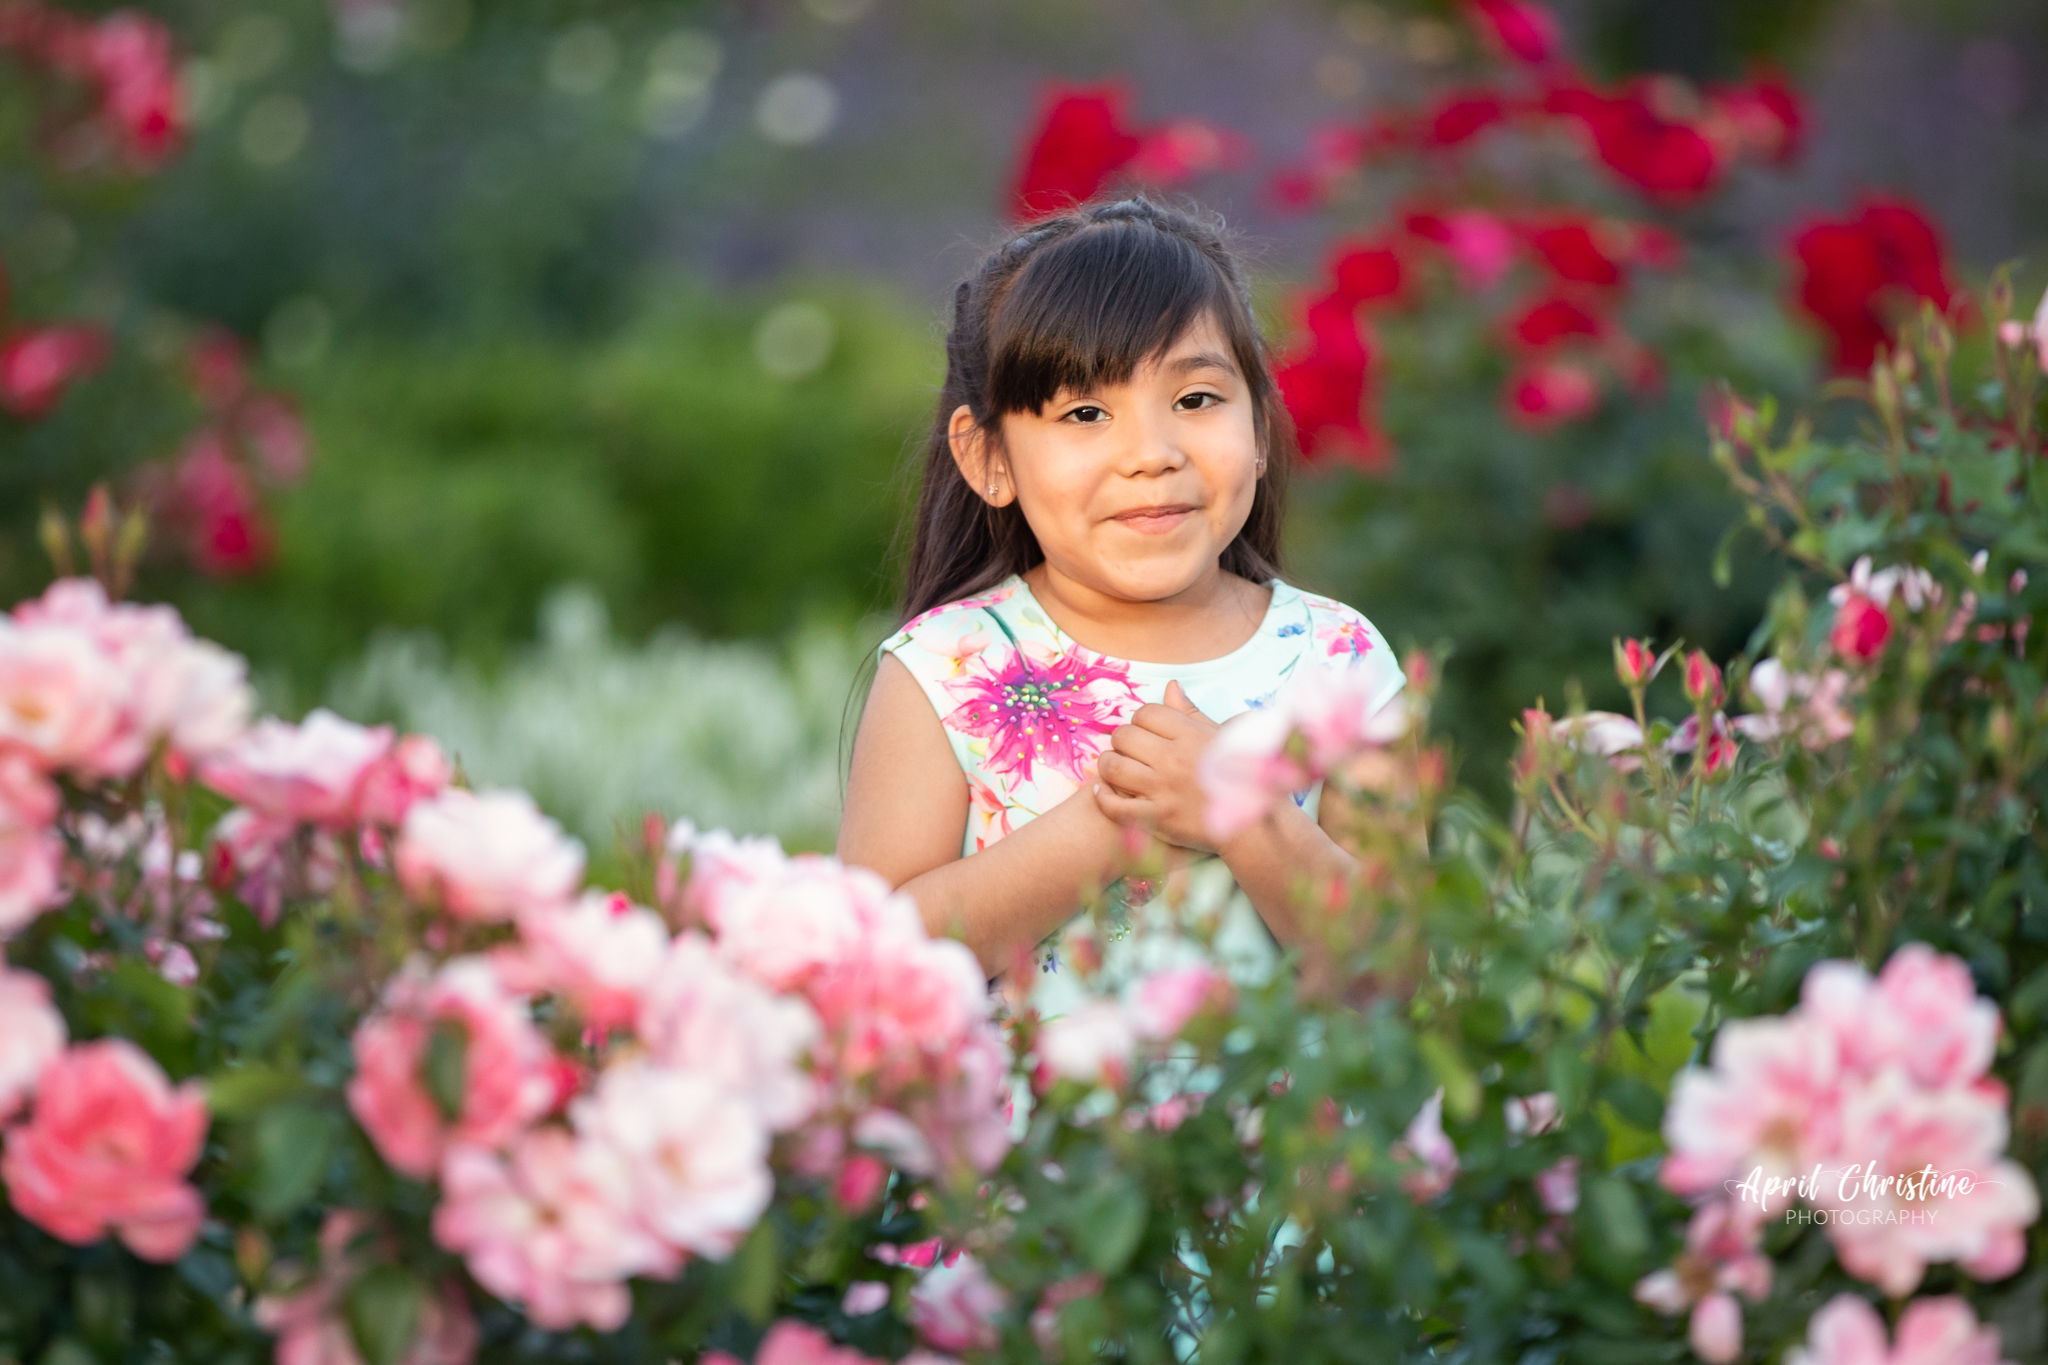 Child Photography in Ft Worth Tx